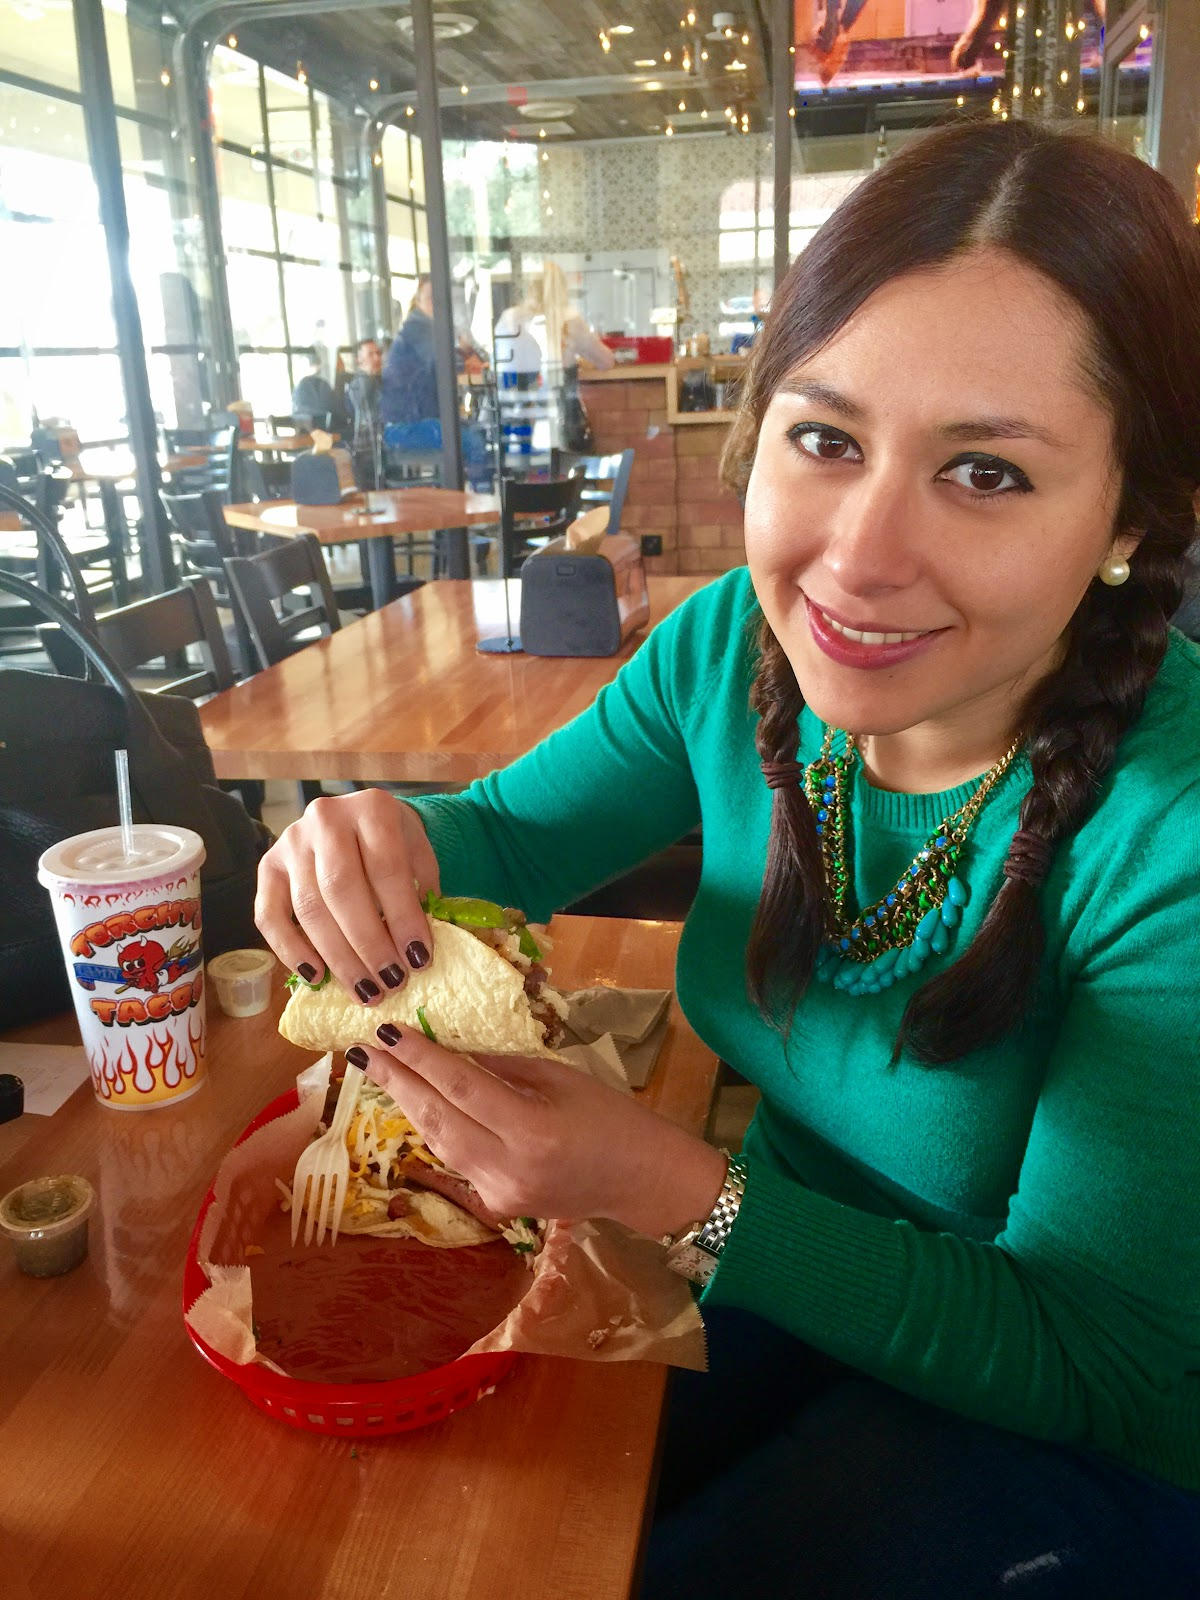 Torchy's_Tacos_SanAntonio_eating_tacos_in_San_Antonio